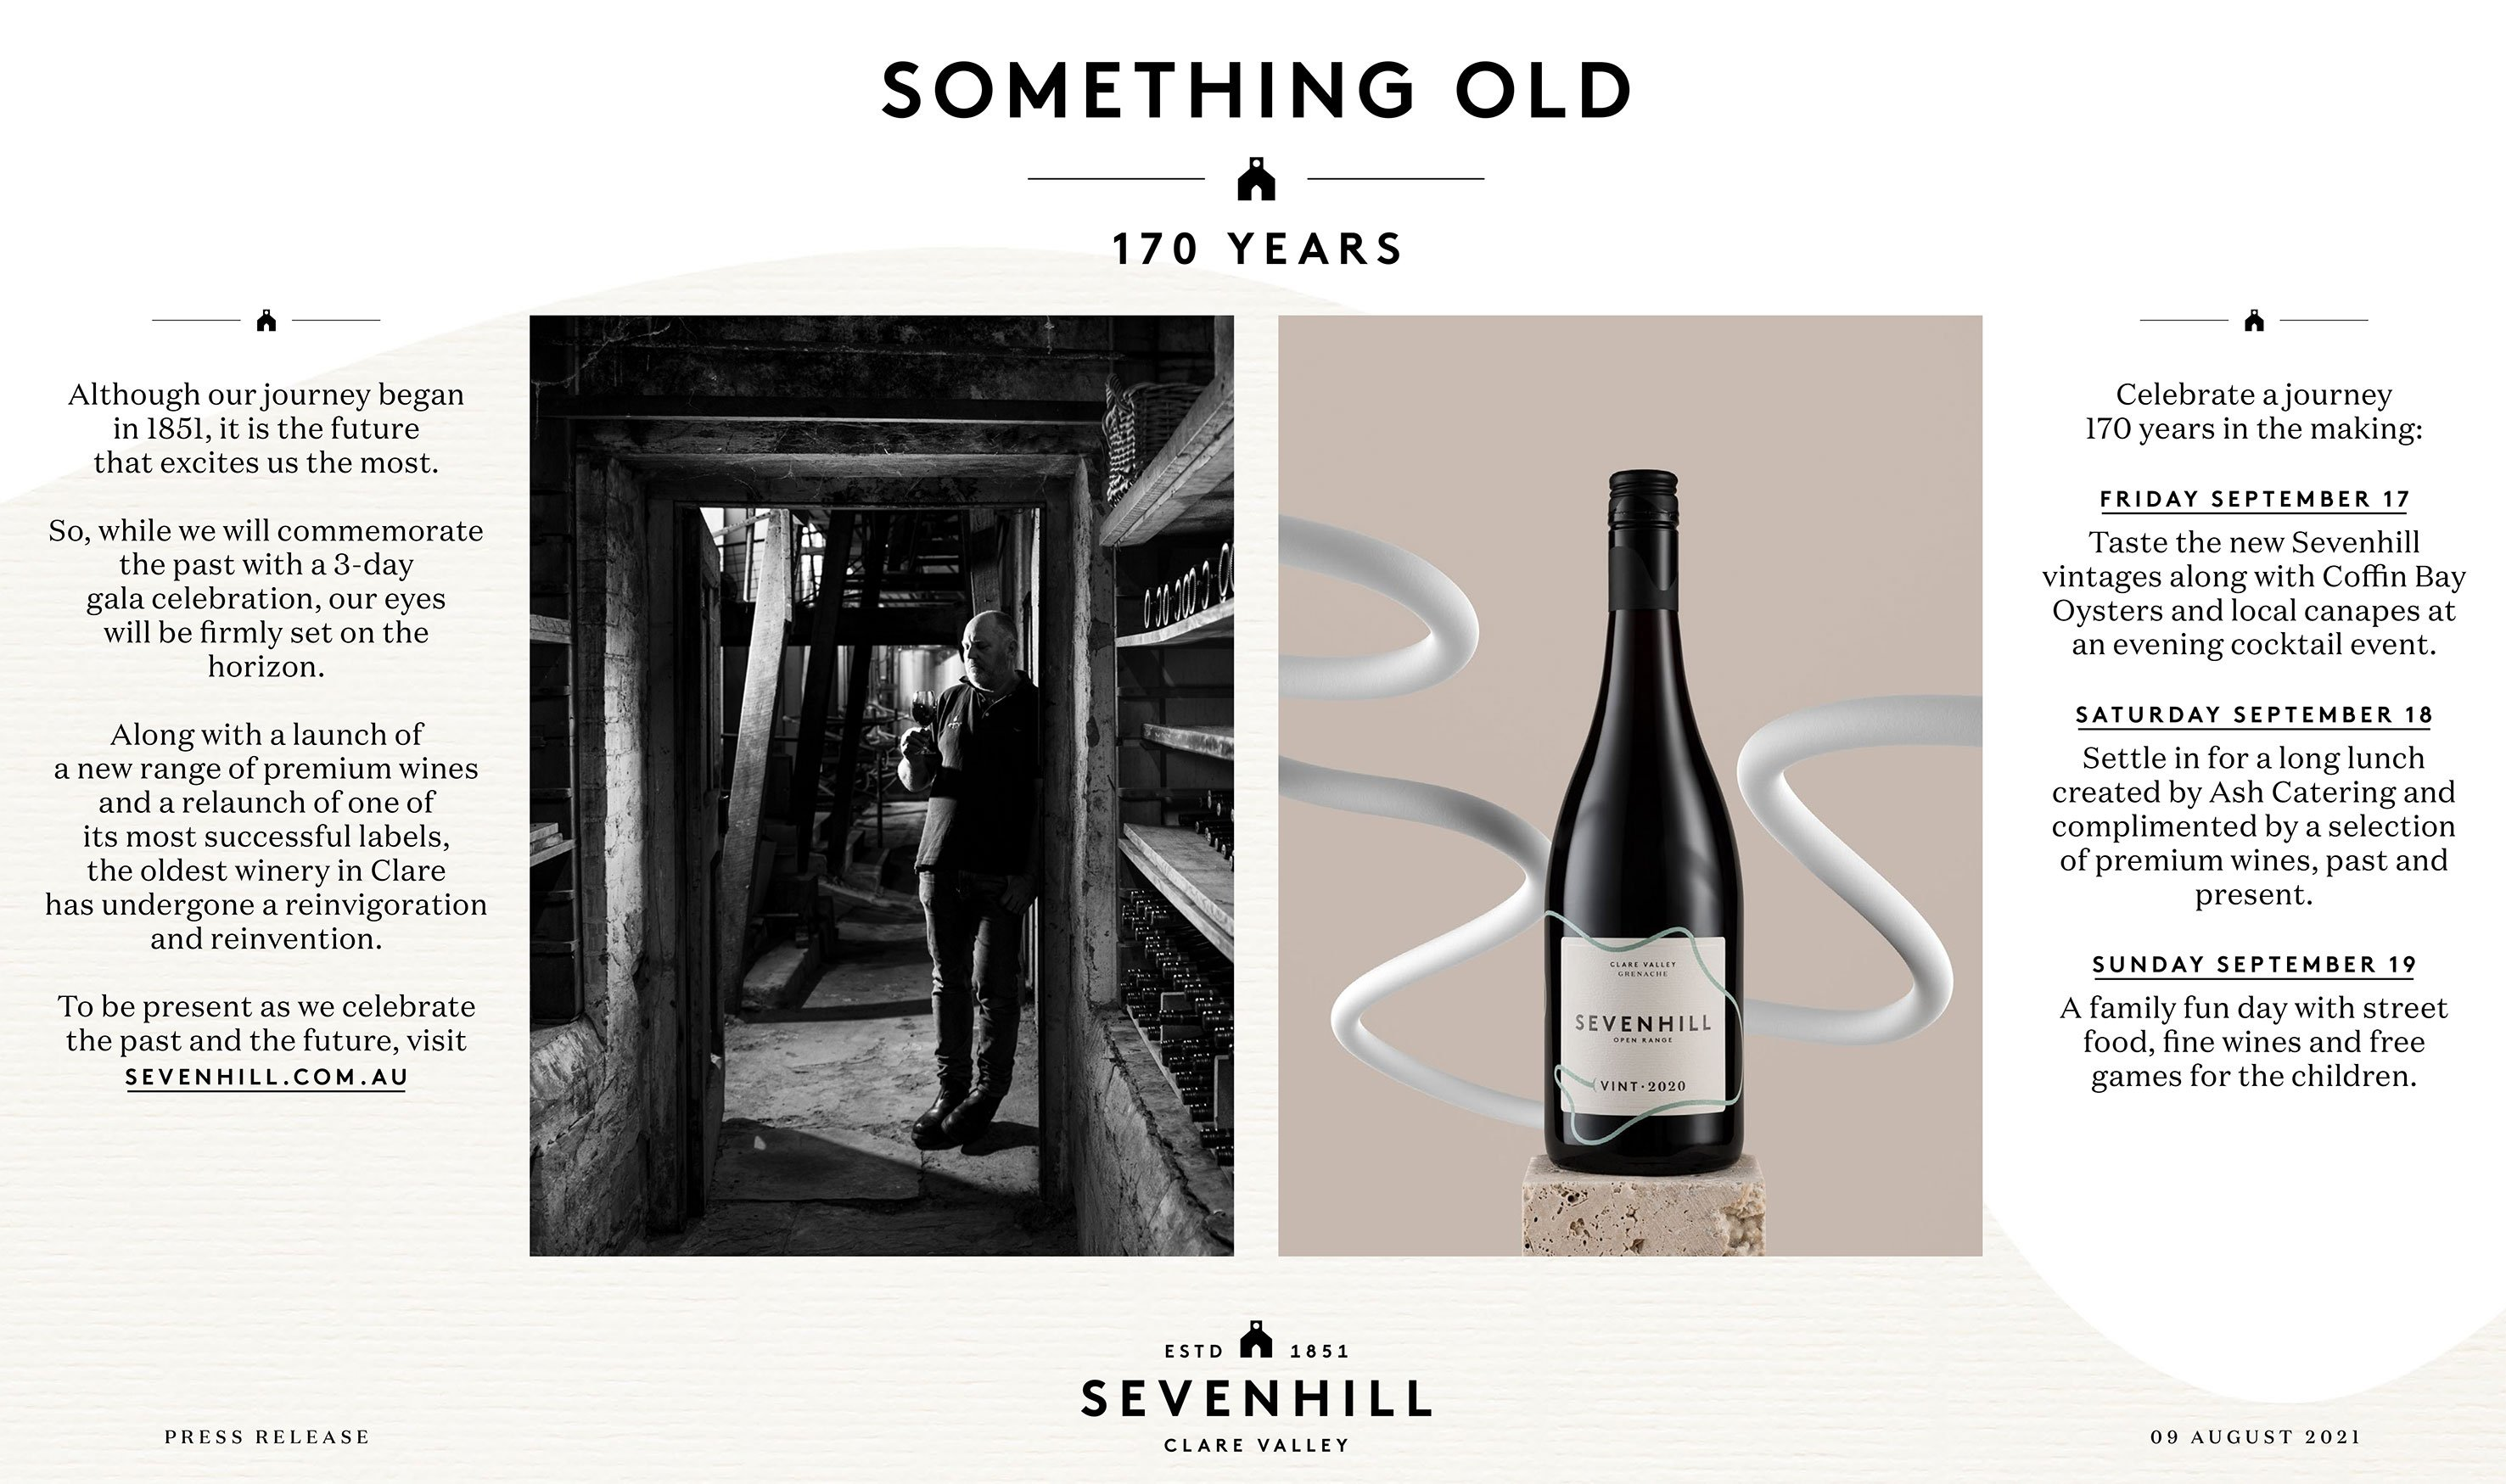 Sevenhill - 170 years in the making